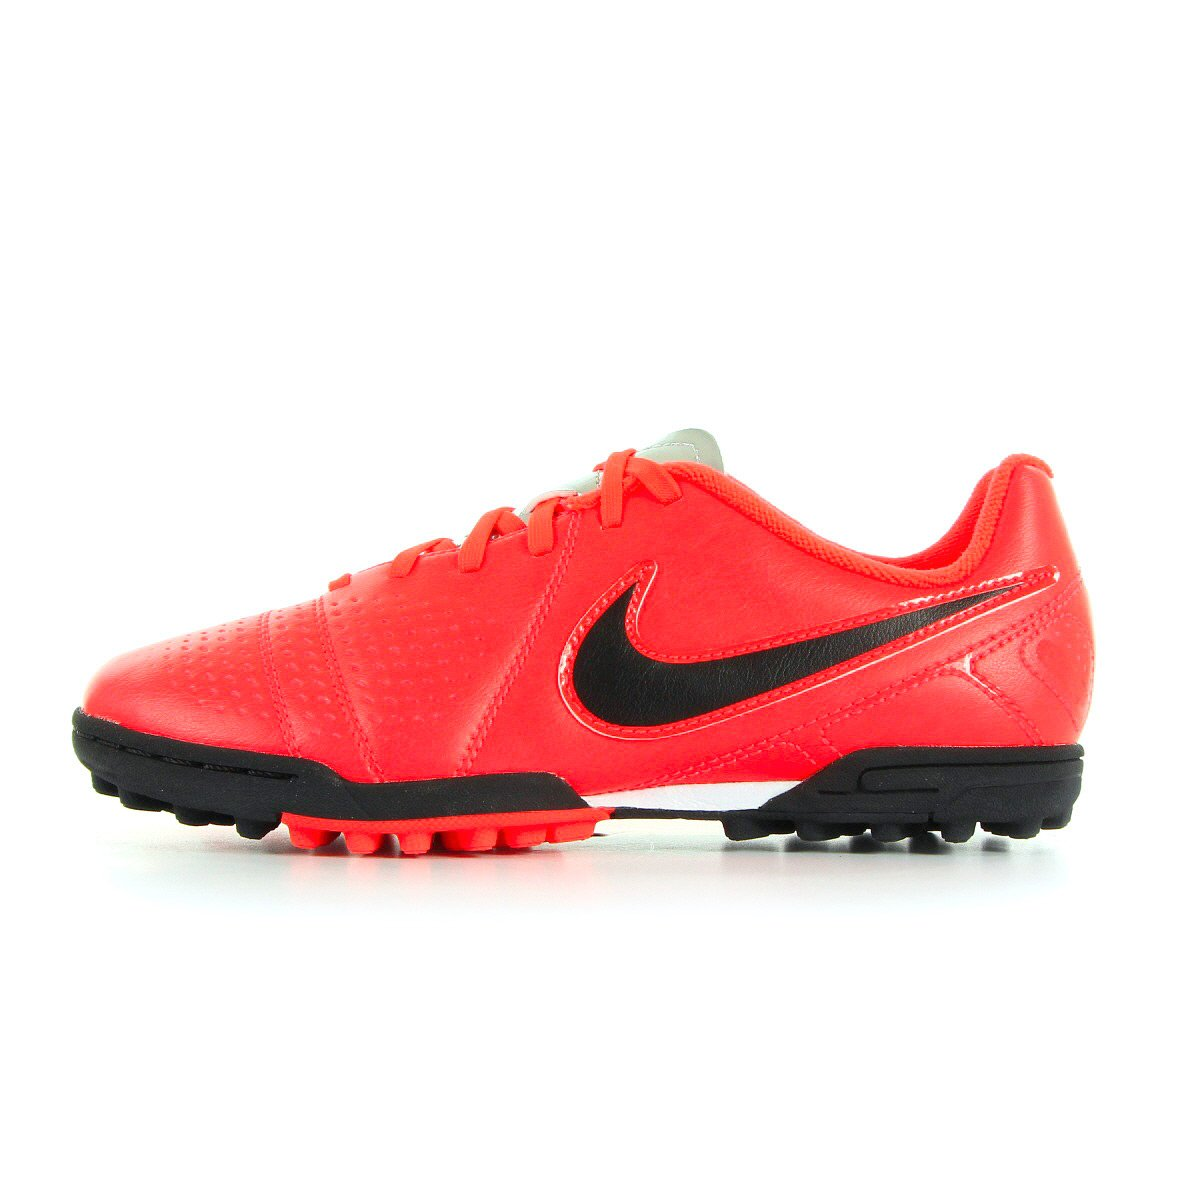 Tf Ctr360 Iii Libretto 525159600 Enfant Nike Taille Football Jr 7ZWnptI